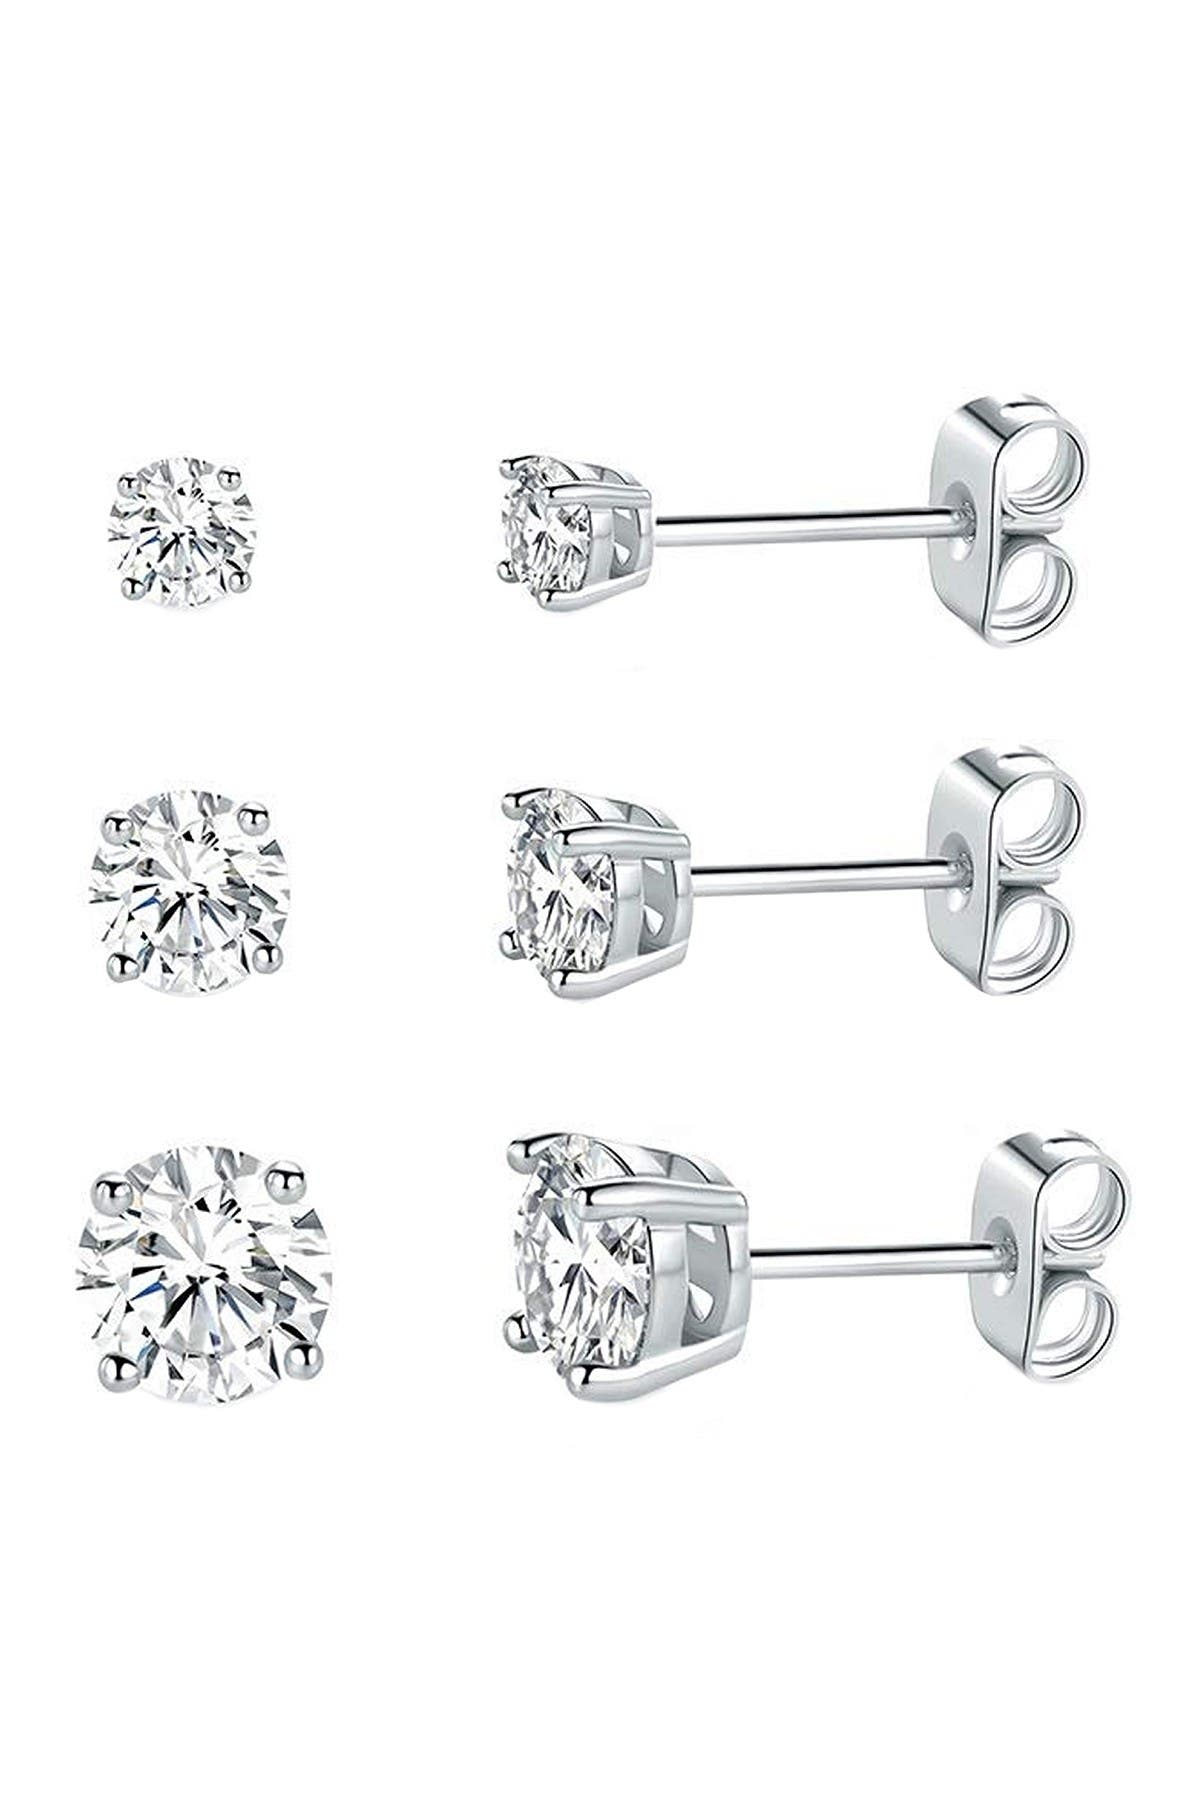 Image of Savvy Cie Sterling Silver Round-Cut Multi Sized CZ Stud Earring Set